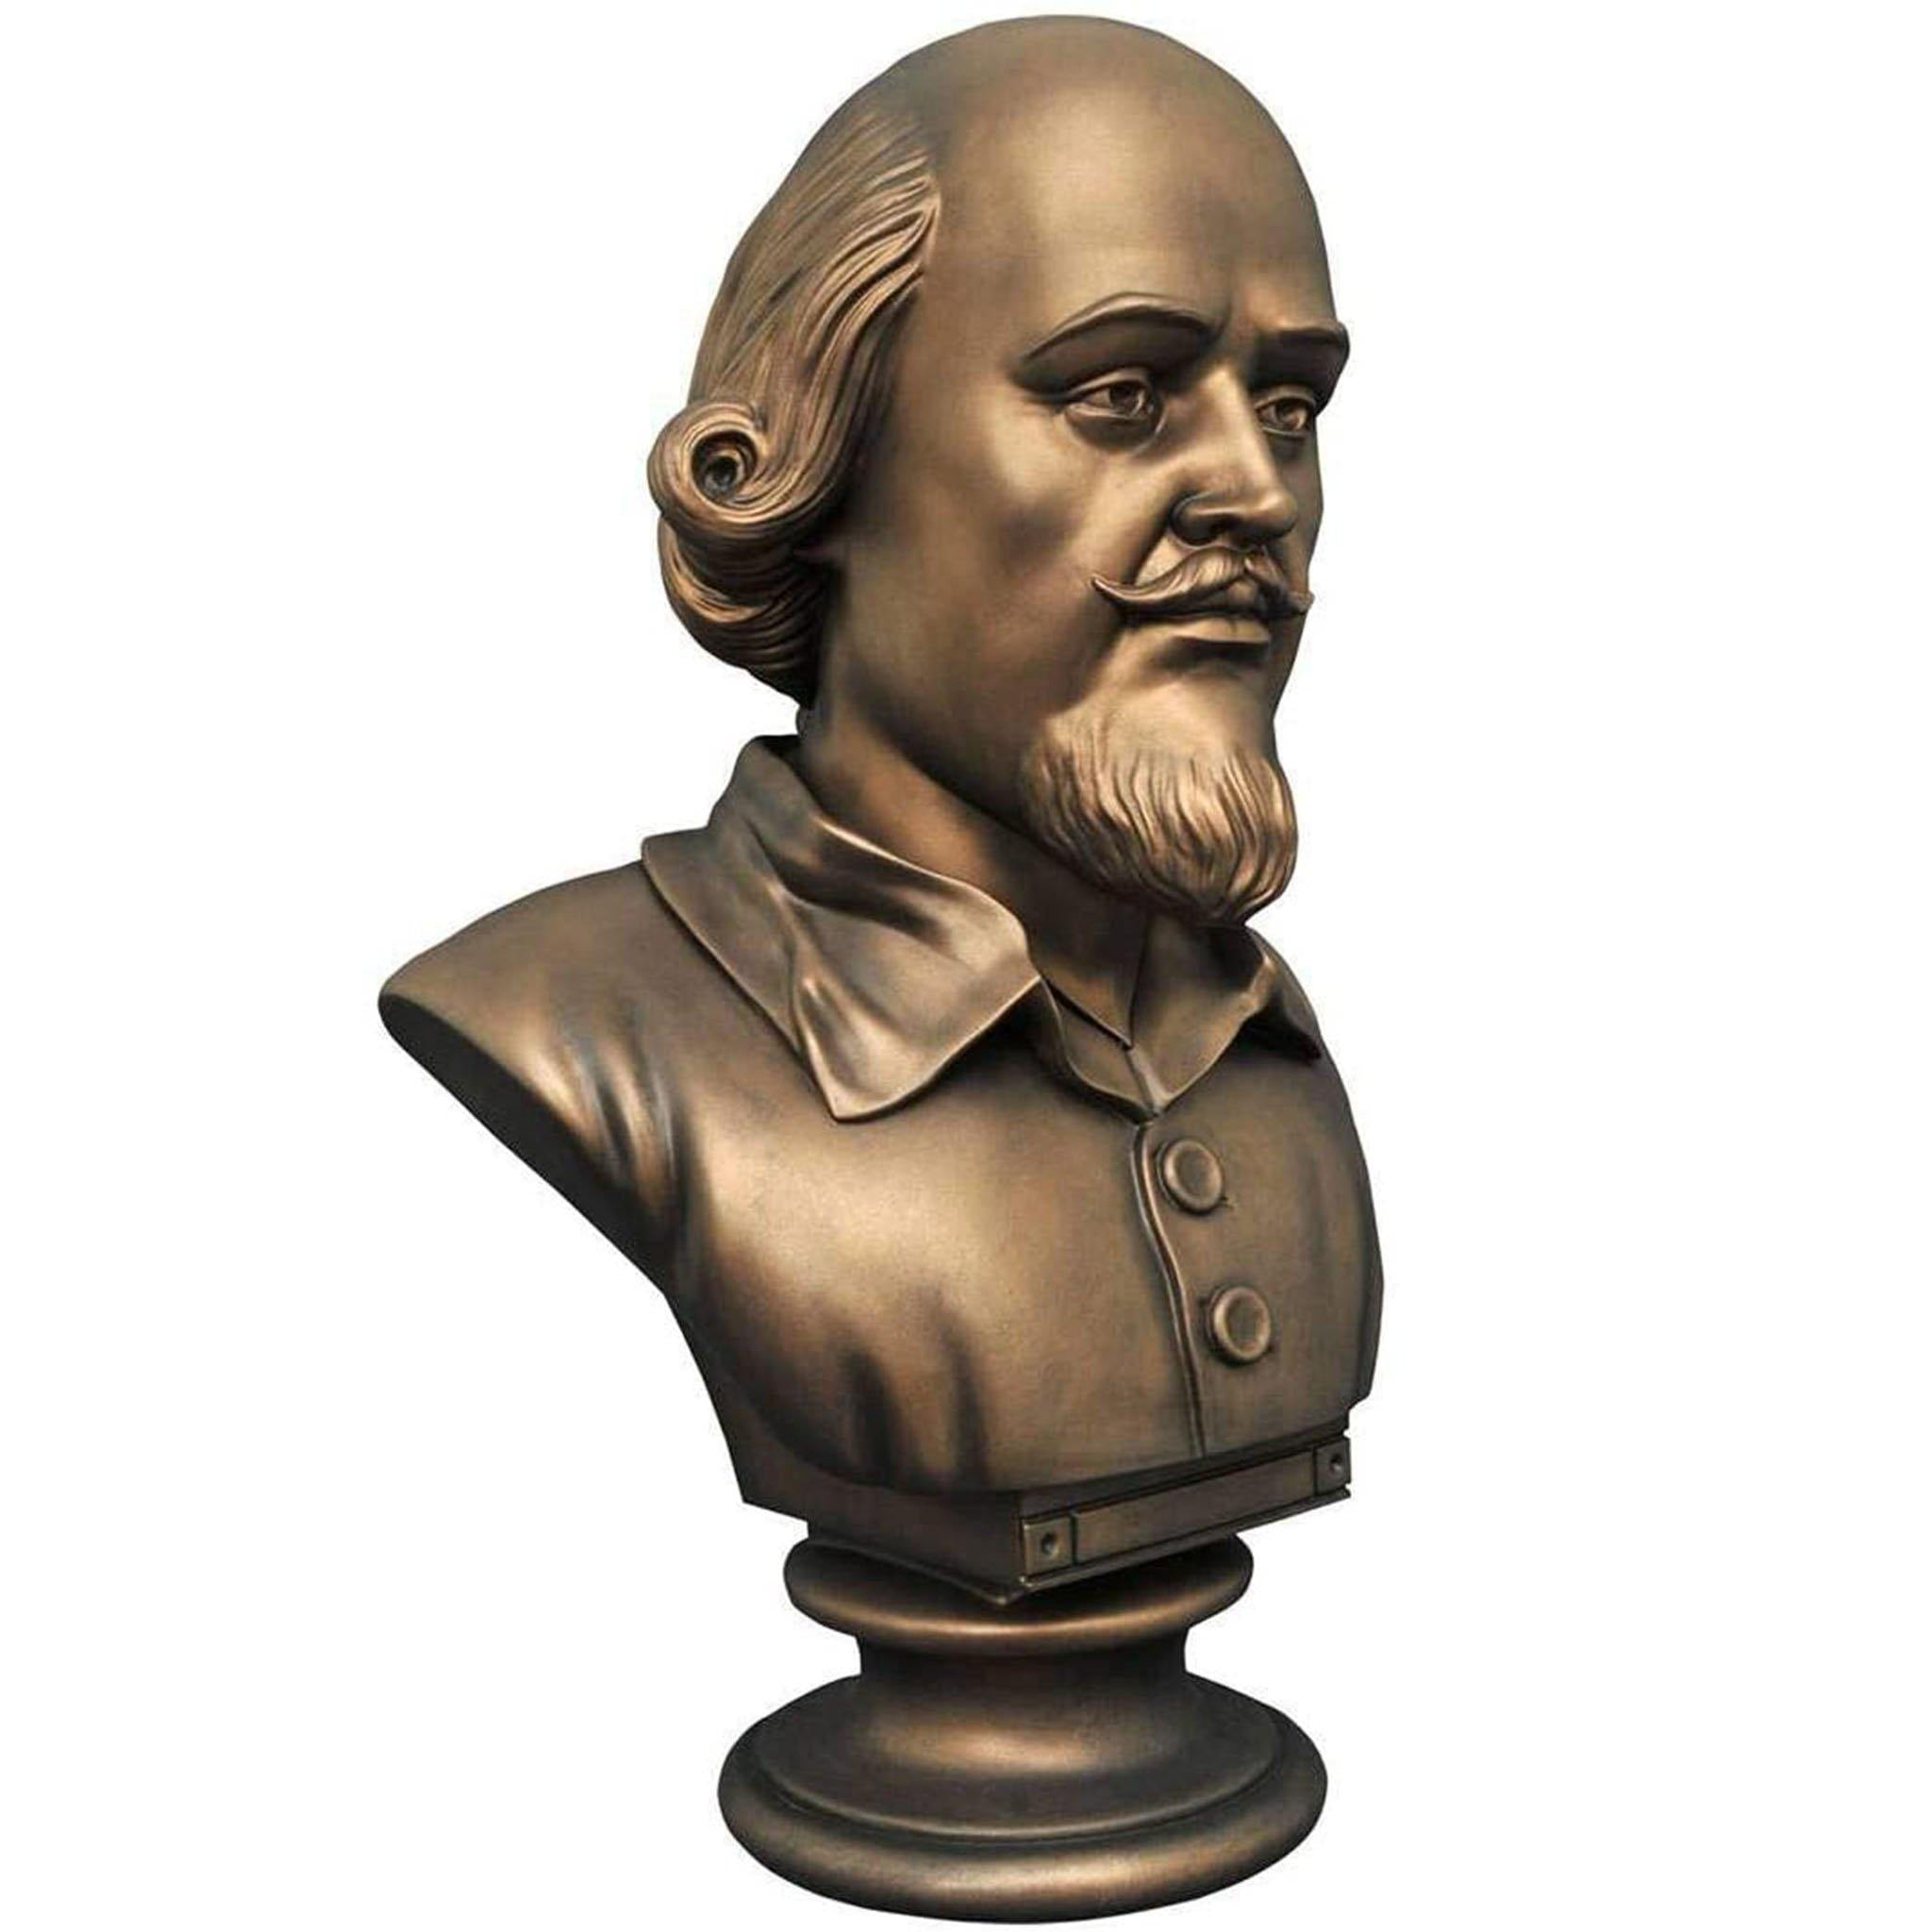 Batman 1966 Bust Bank Shakespeare Bust - NEXTLEVELUK